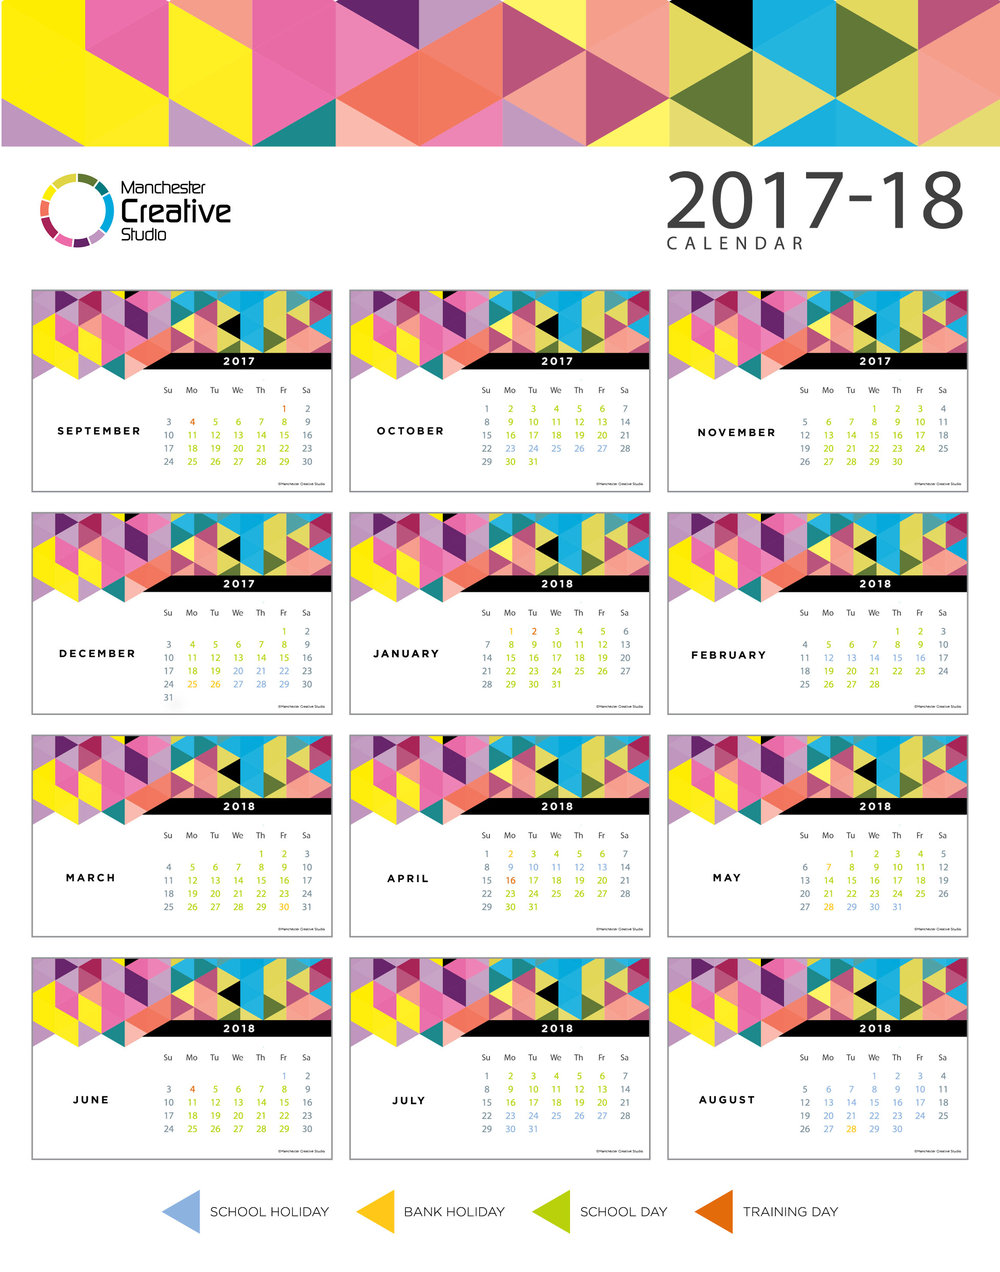 Click here to see in detail MCS 2017 - 18 Calendar